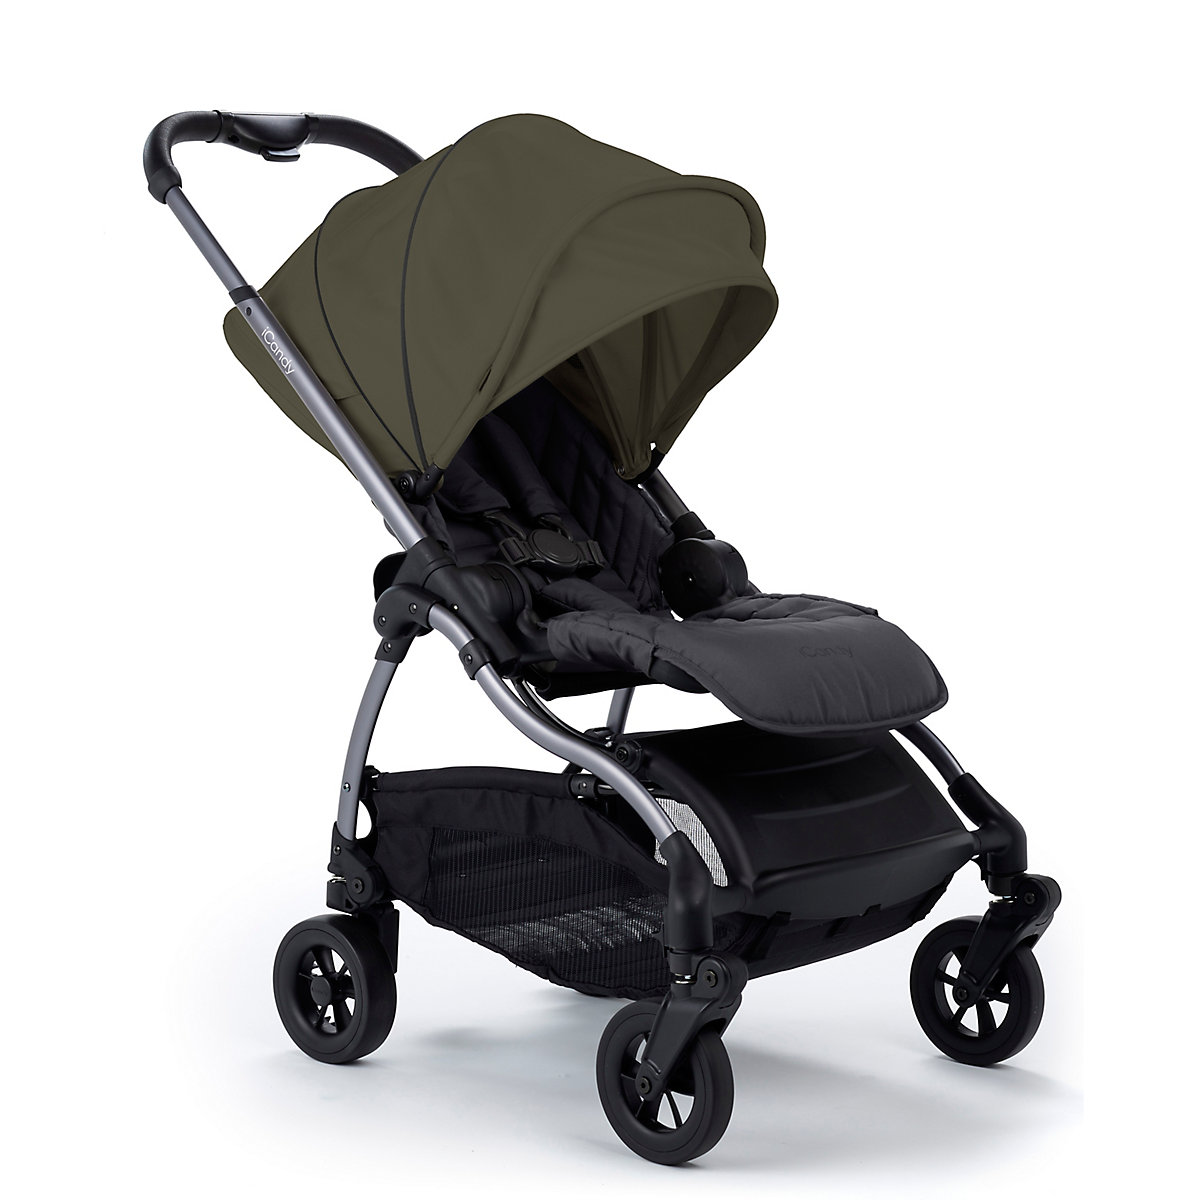 iCandy Raspberry Stroller